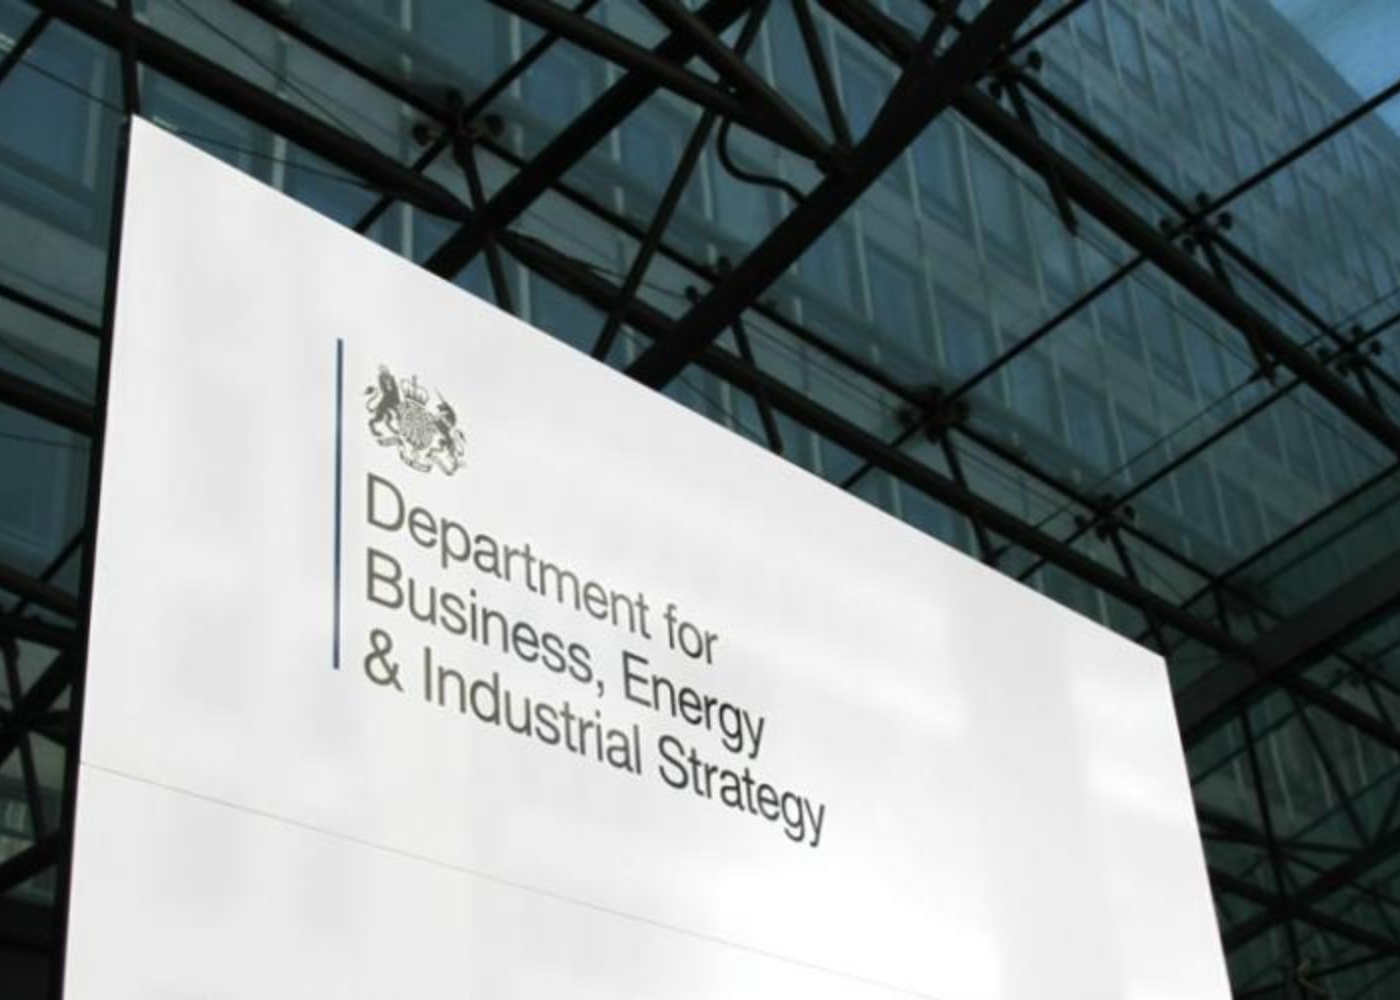 UK Department for Business, Energy & Industrial Strategy